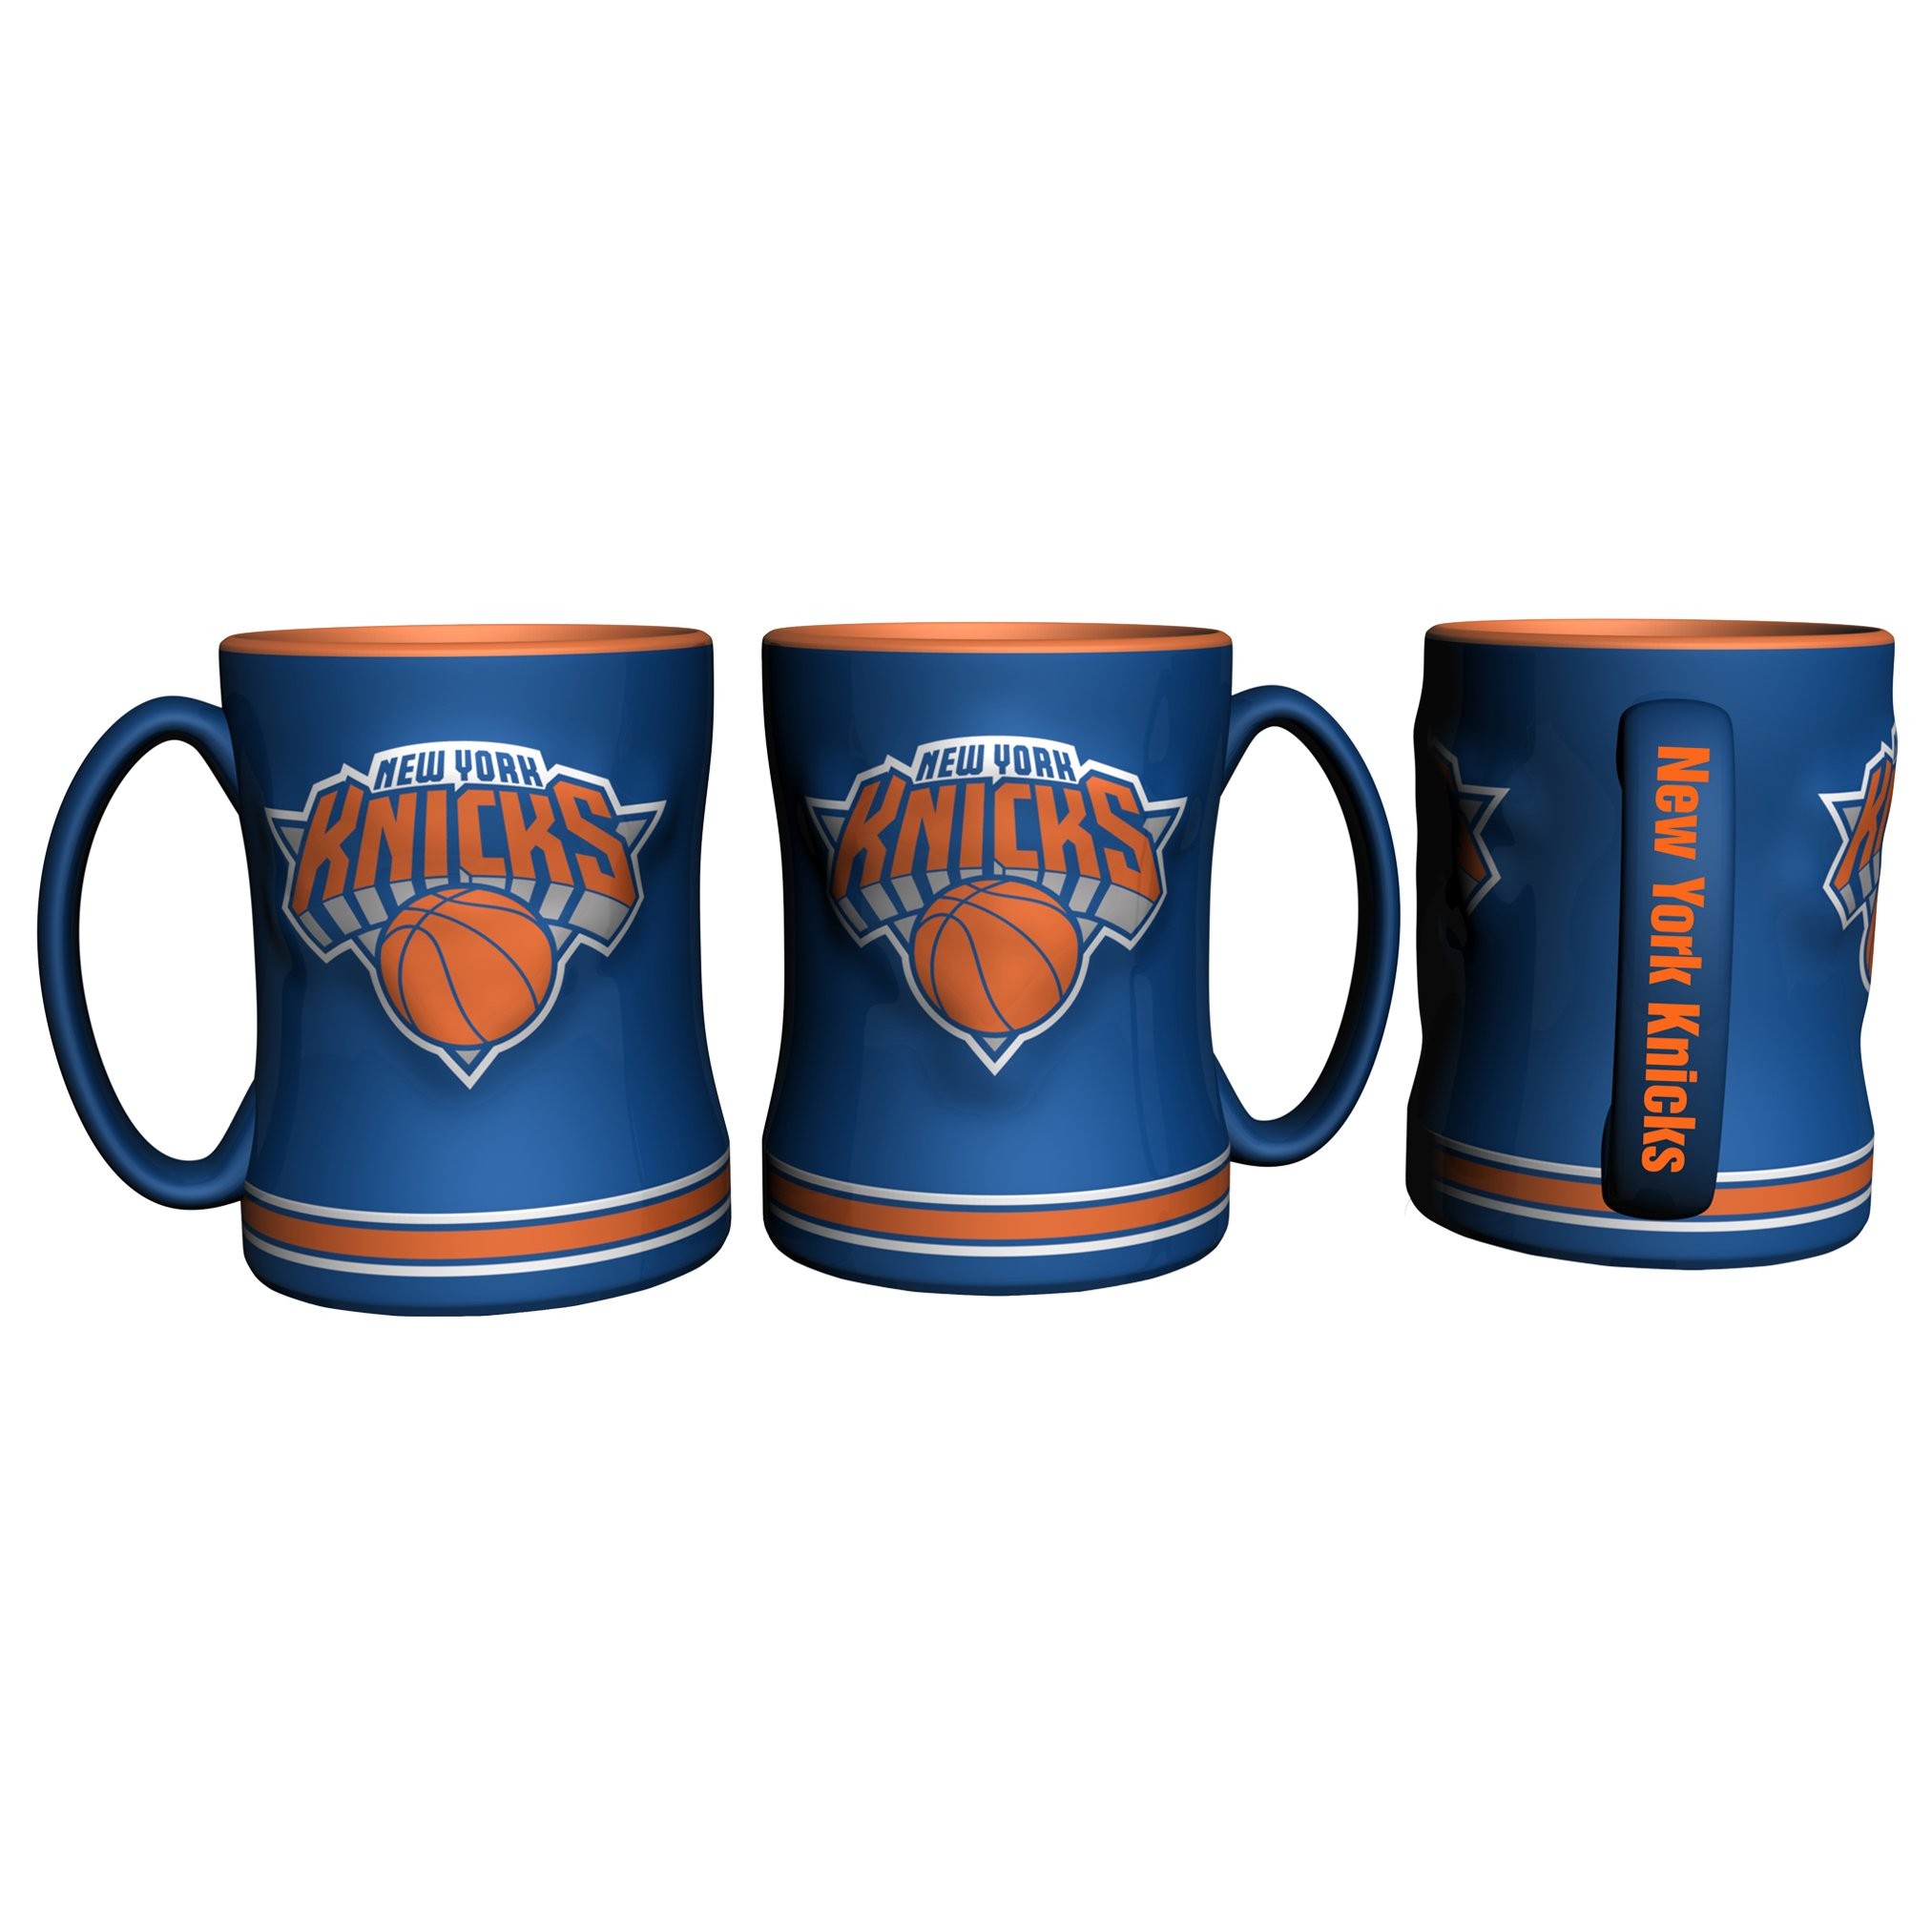 Boelter Brands New York Knicks Official NBA Coffee Mug 14oz Sculpted Relief by 319305 by Boelter Brands